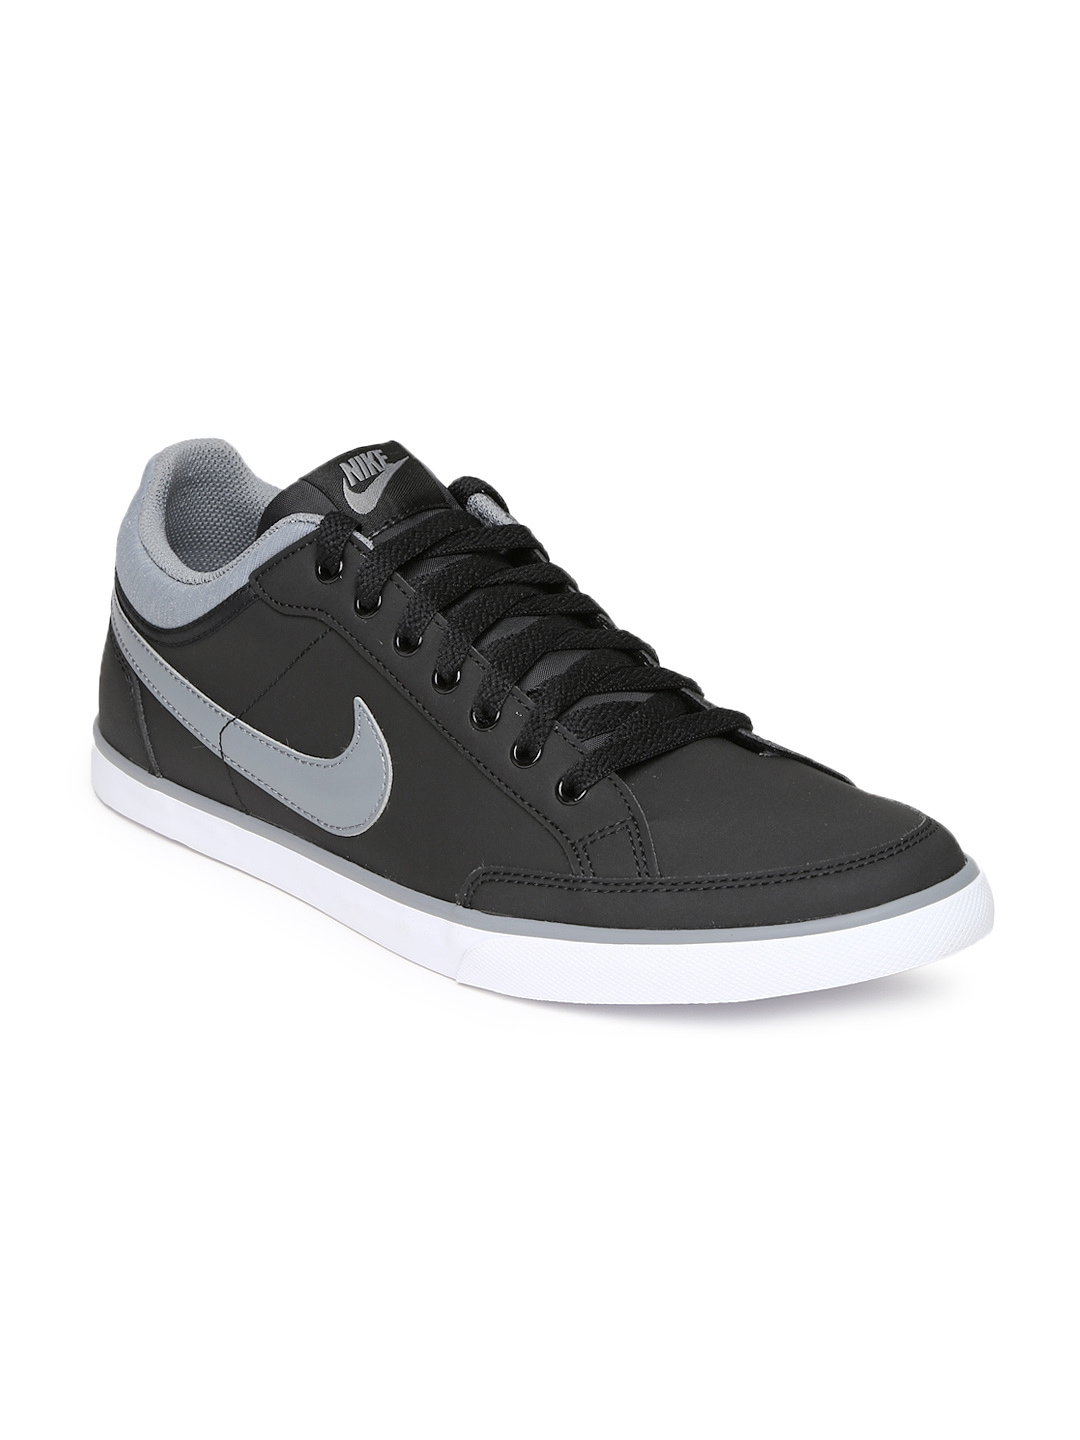 myntra nike black iii leather casual shoes